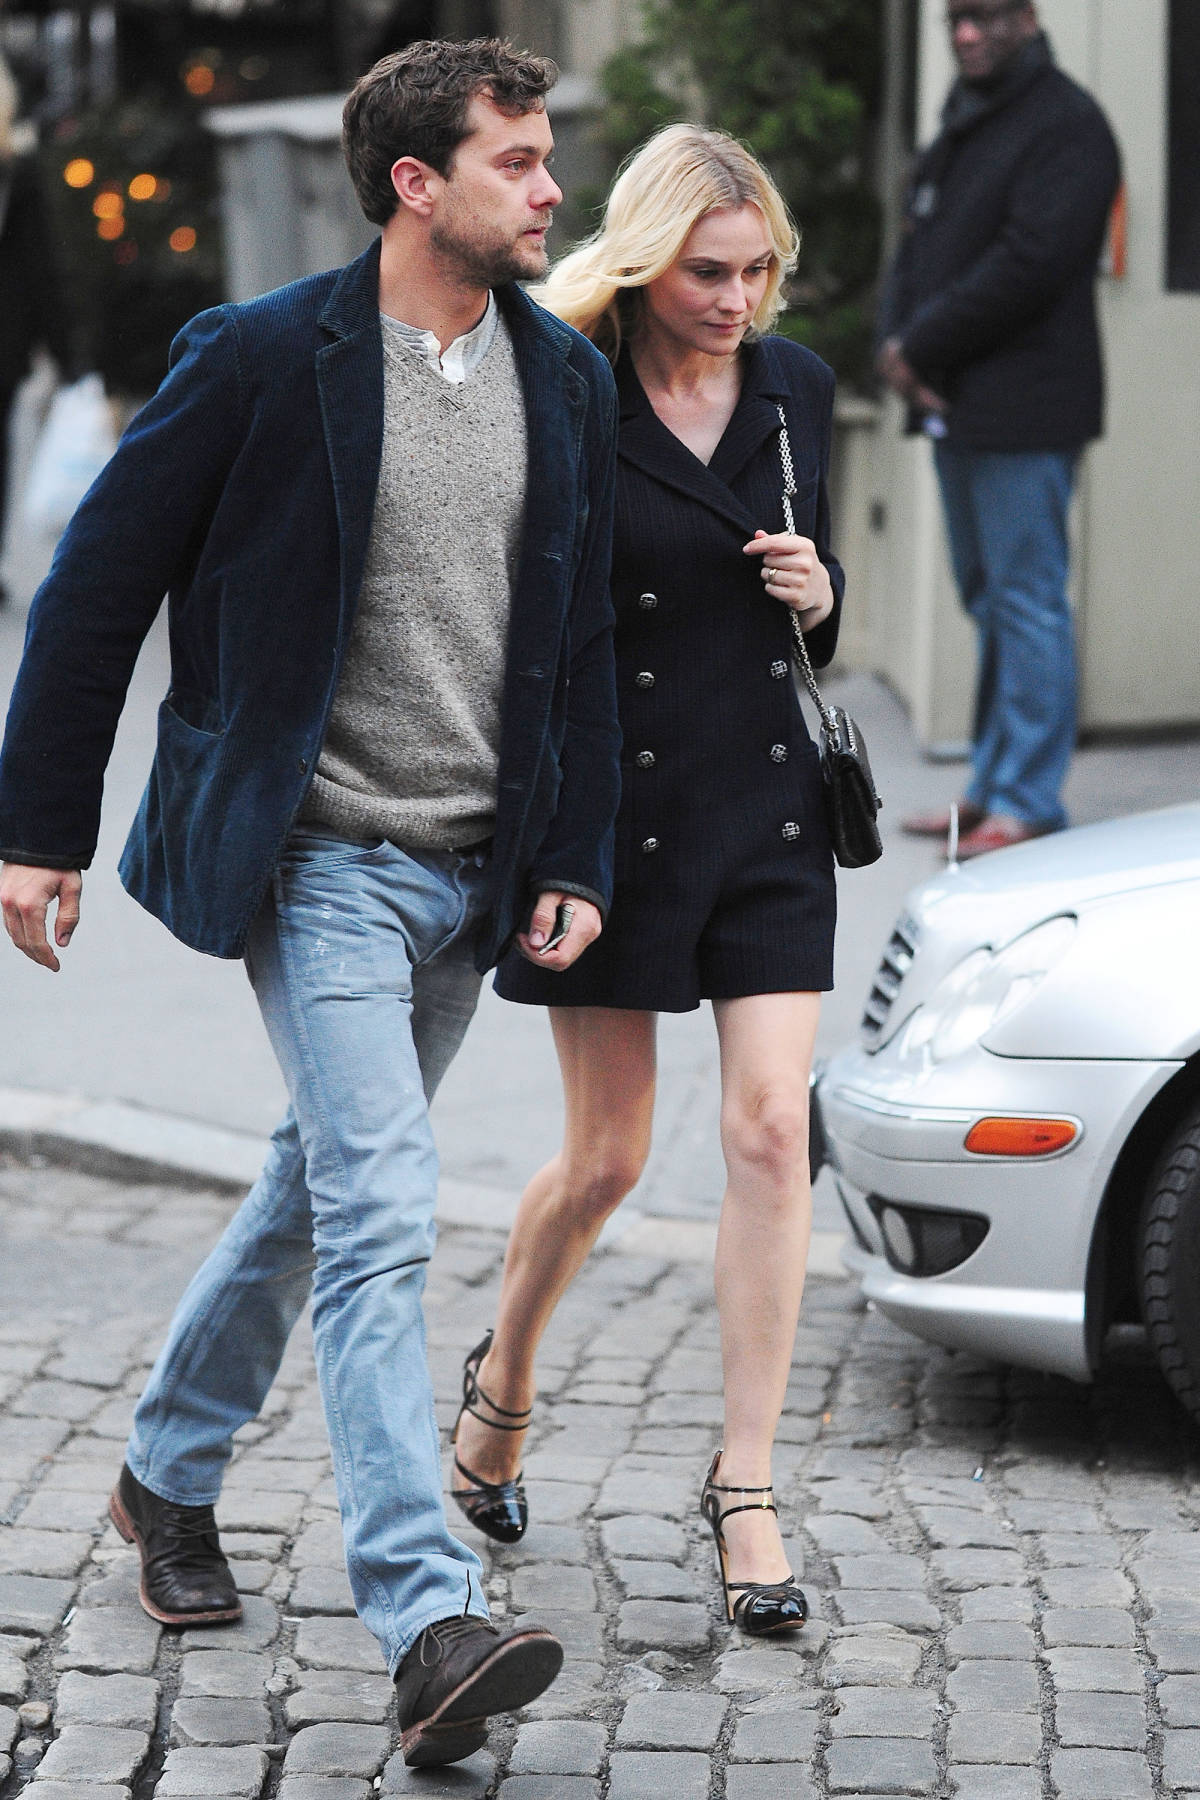 54bb628f88d12_-_list-chic-couples-00-joshua-jackson-diane-kruger-getty-2-xl